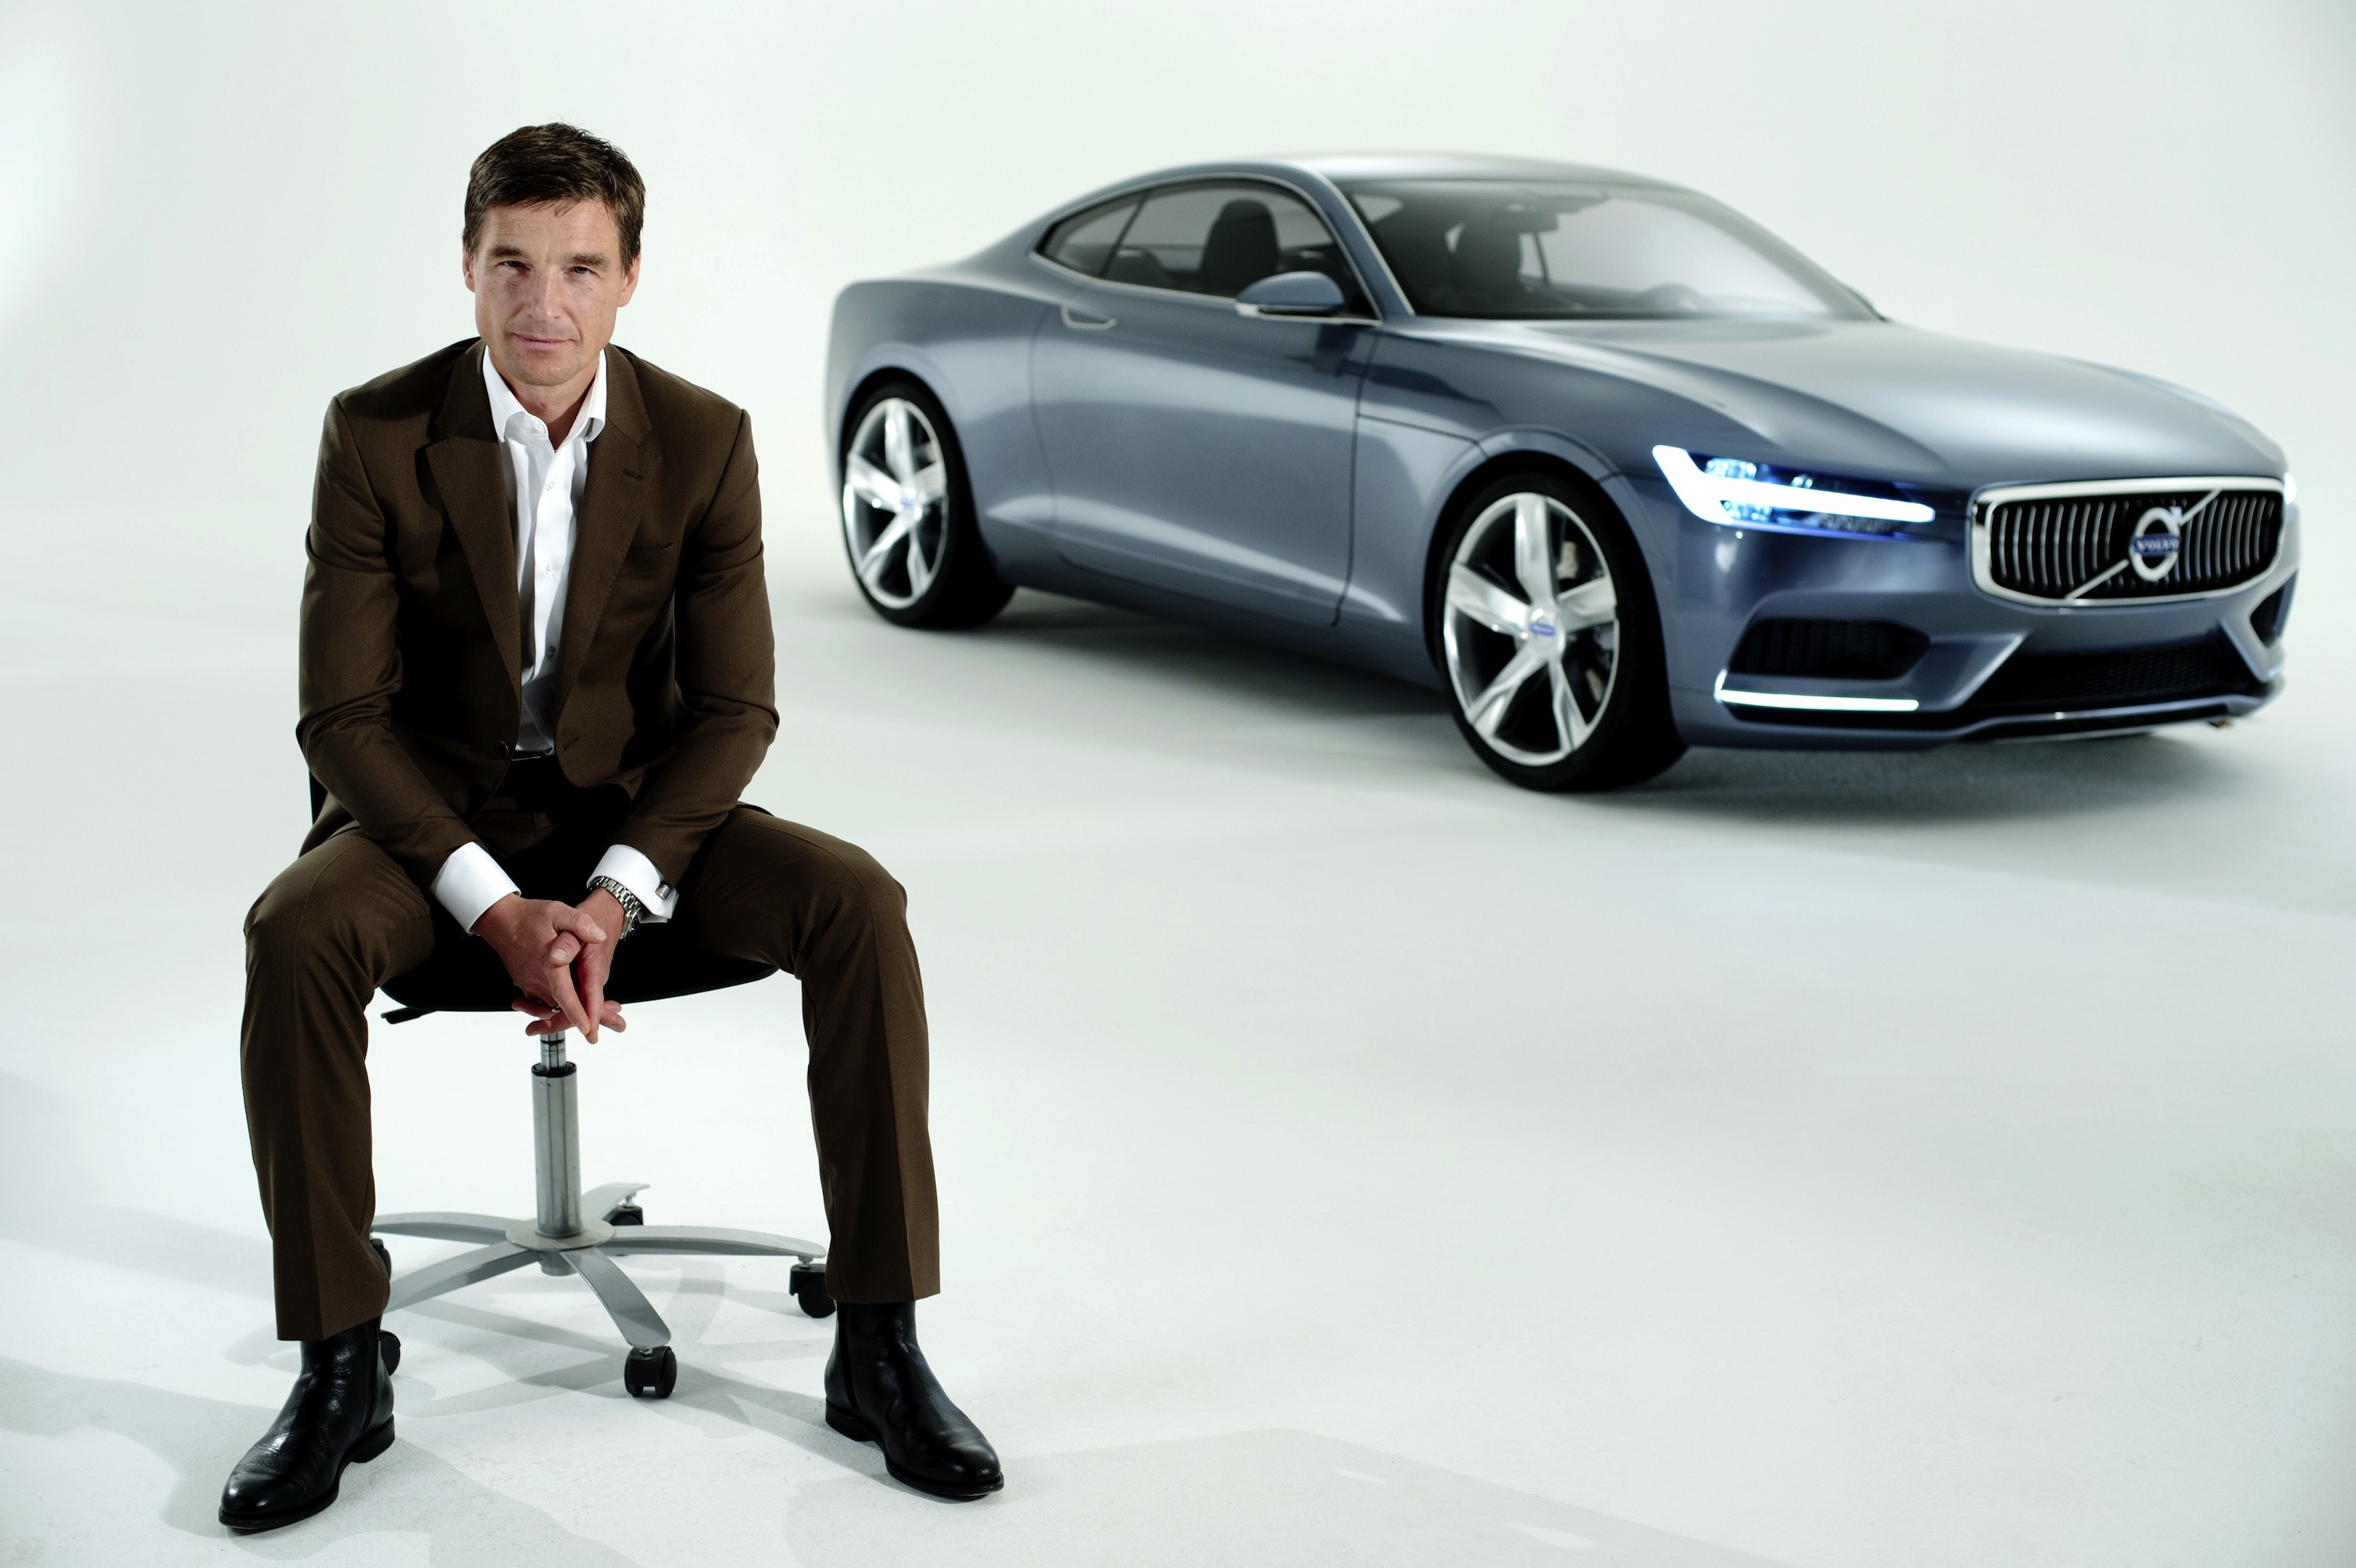 Thomas Ingenlath, Volvo's Senior Vice President of Design with the new Concept Coupe